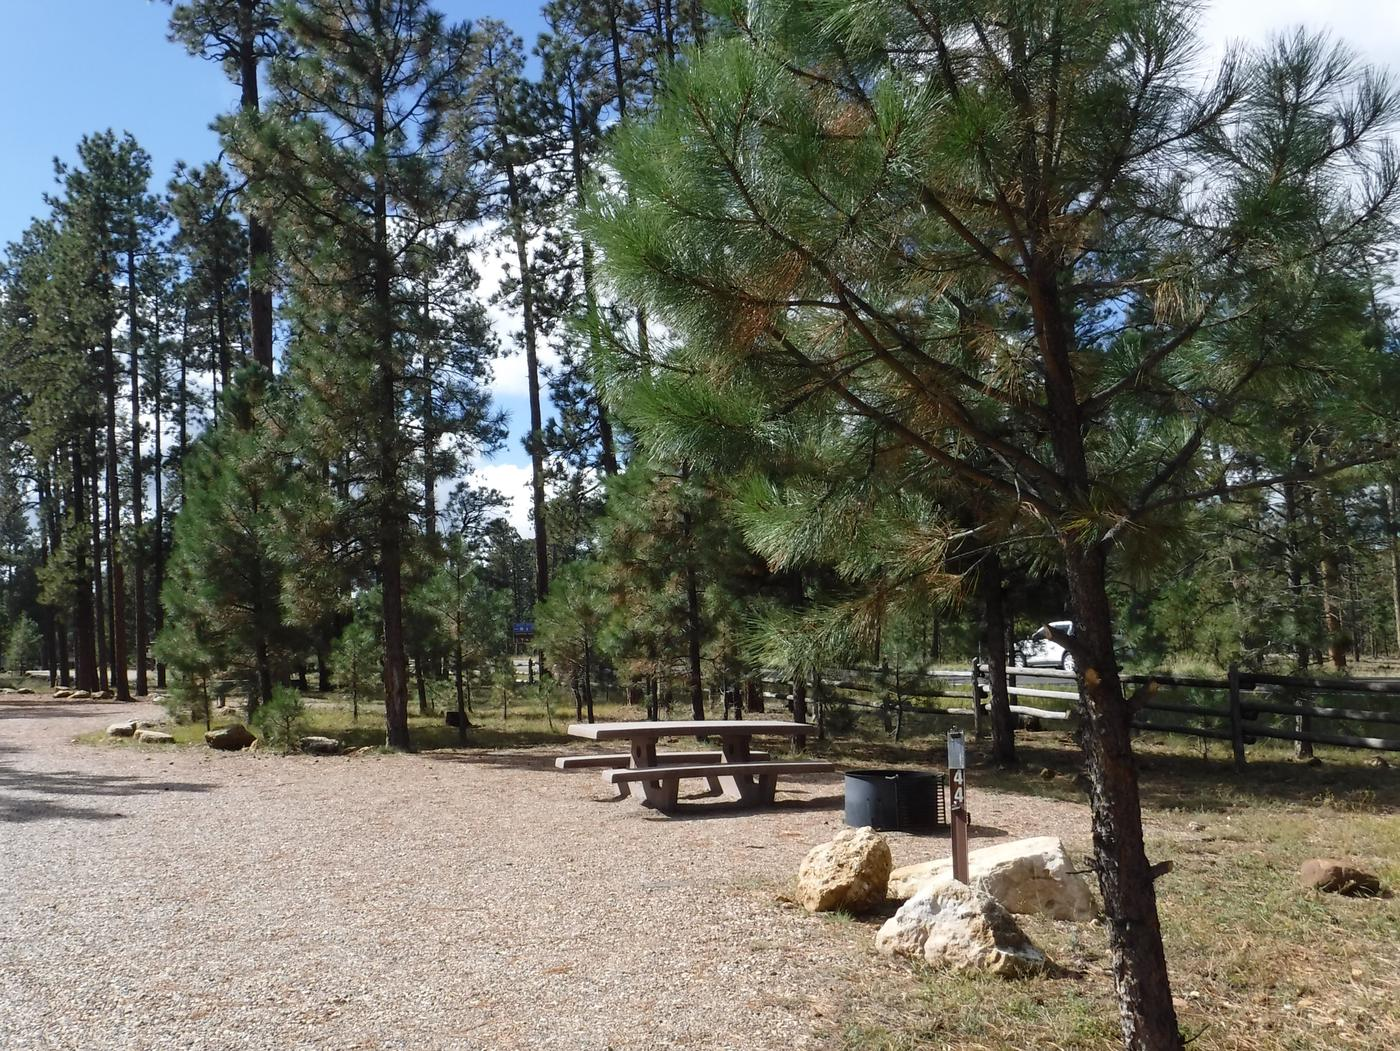 Jacob Lake site #44 featuring entrance, parking, and full camp space view.